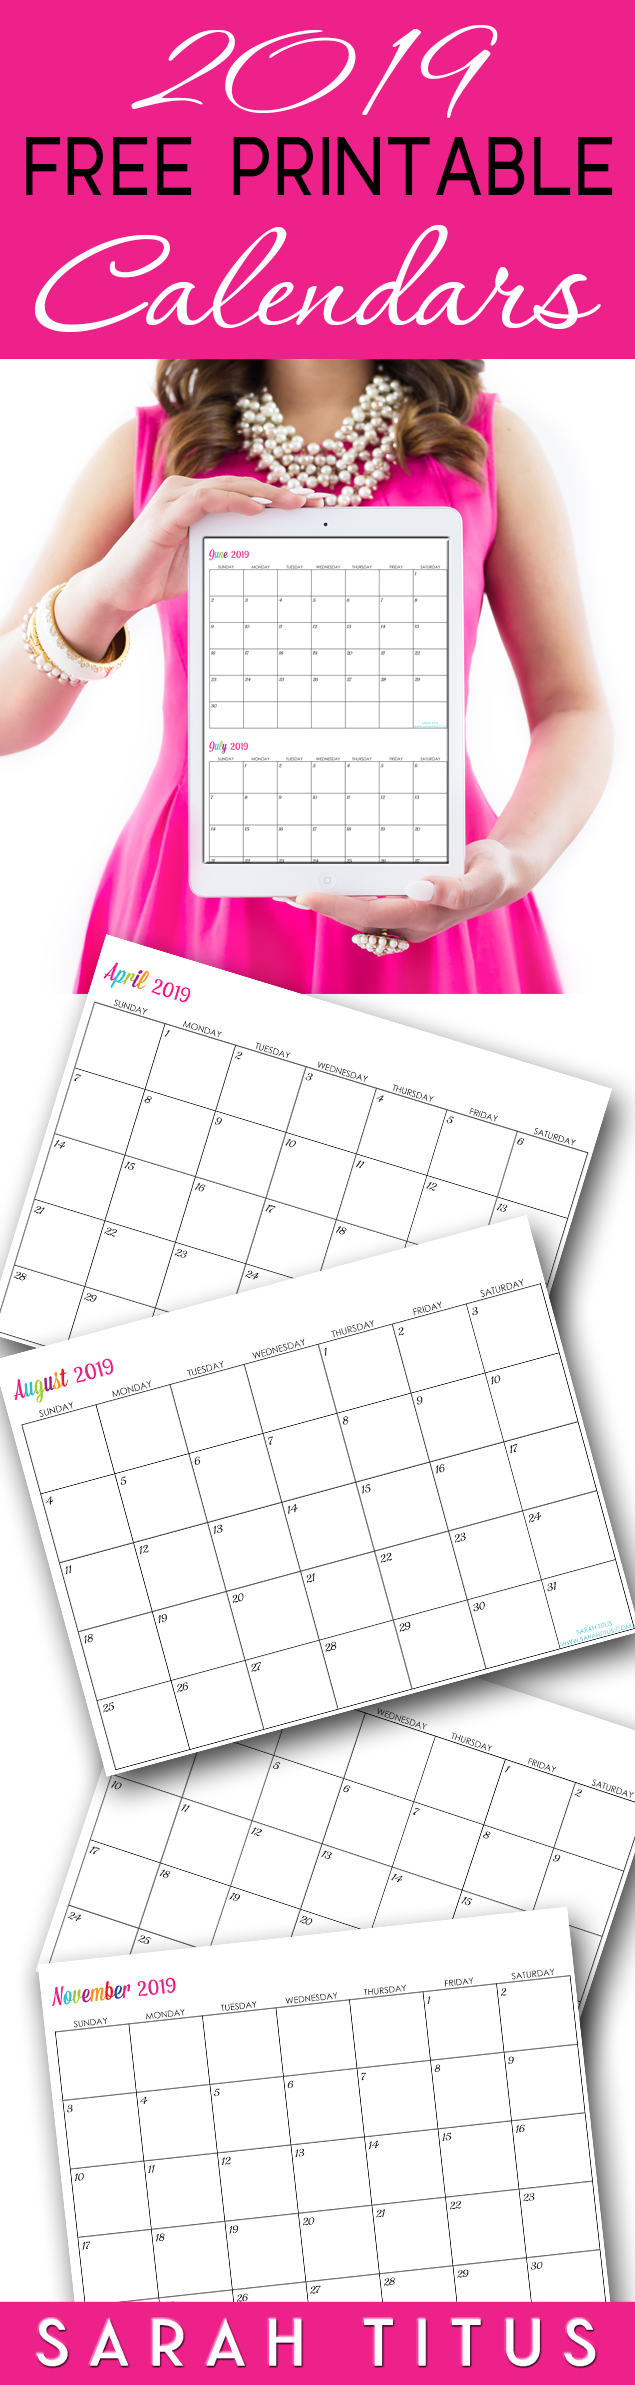 Free Printable 2019 Calendars - Completely editable online!!! Use them for menu planning, homeschooling, blogging, or just to organize your life. #calendars #freeprintablecalendars #freeeditablecalendars #freeprintable2019calendars #2019calendars